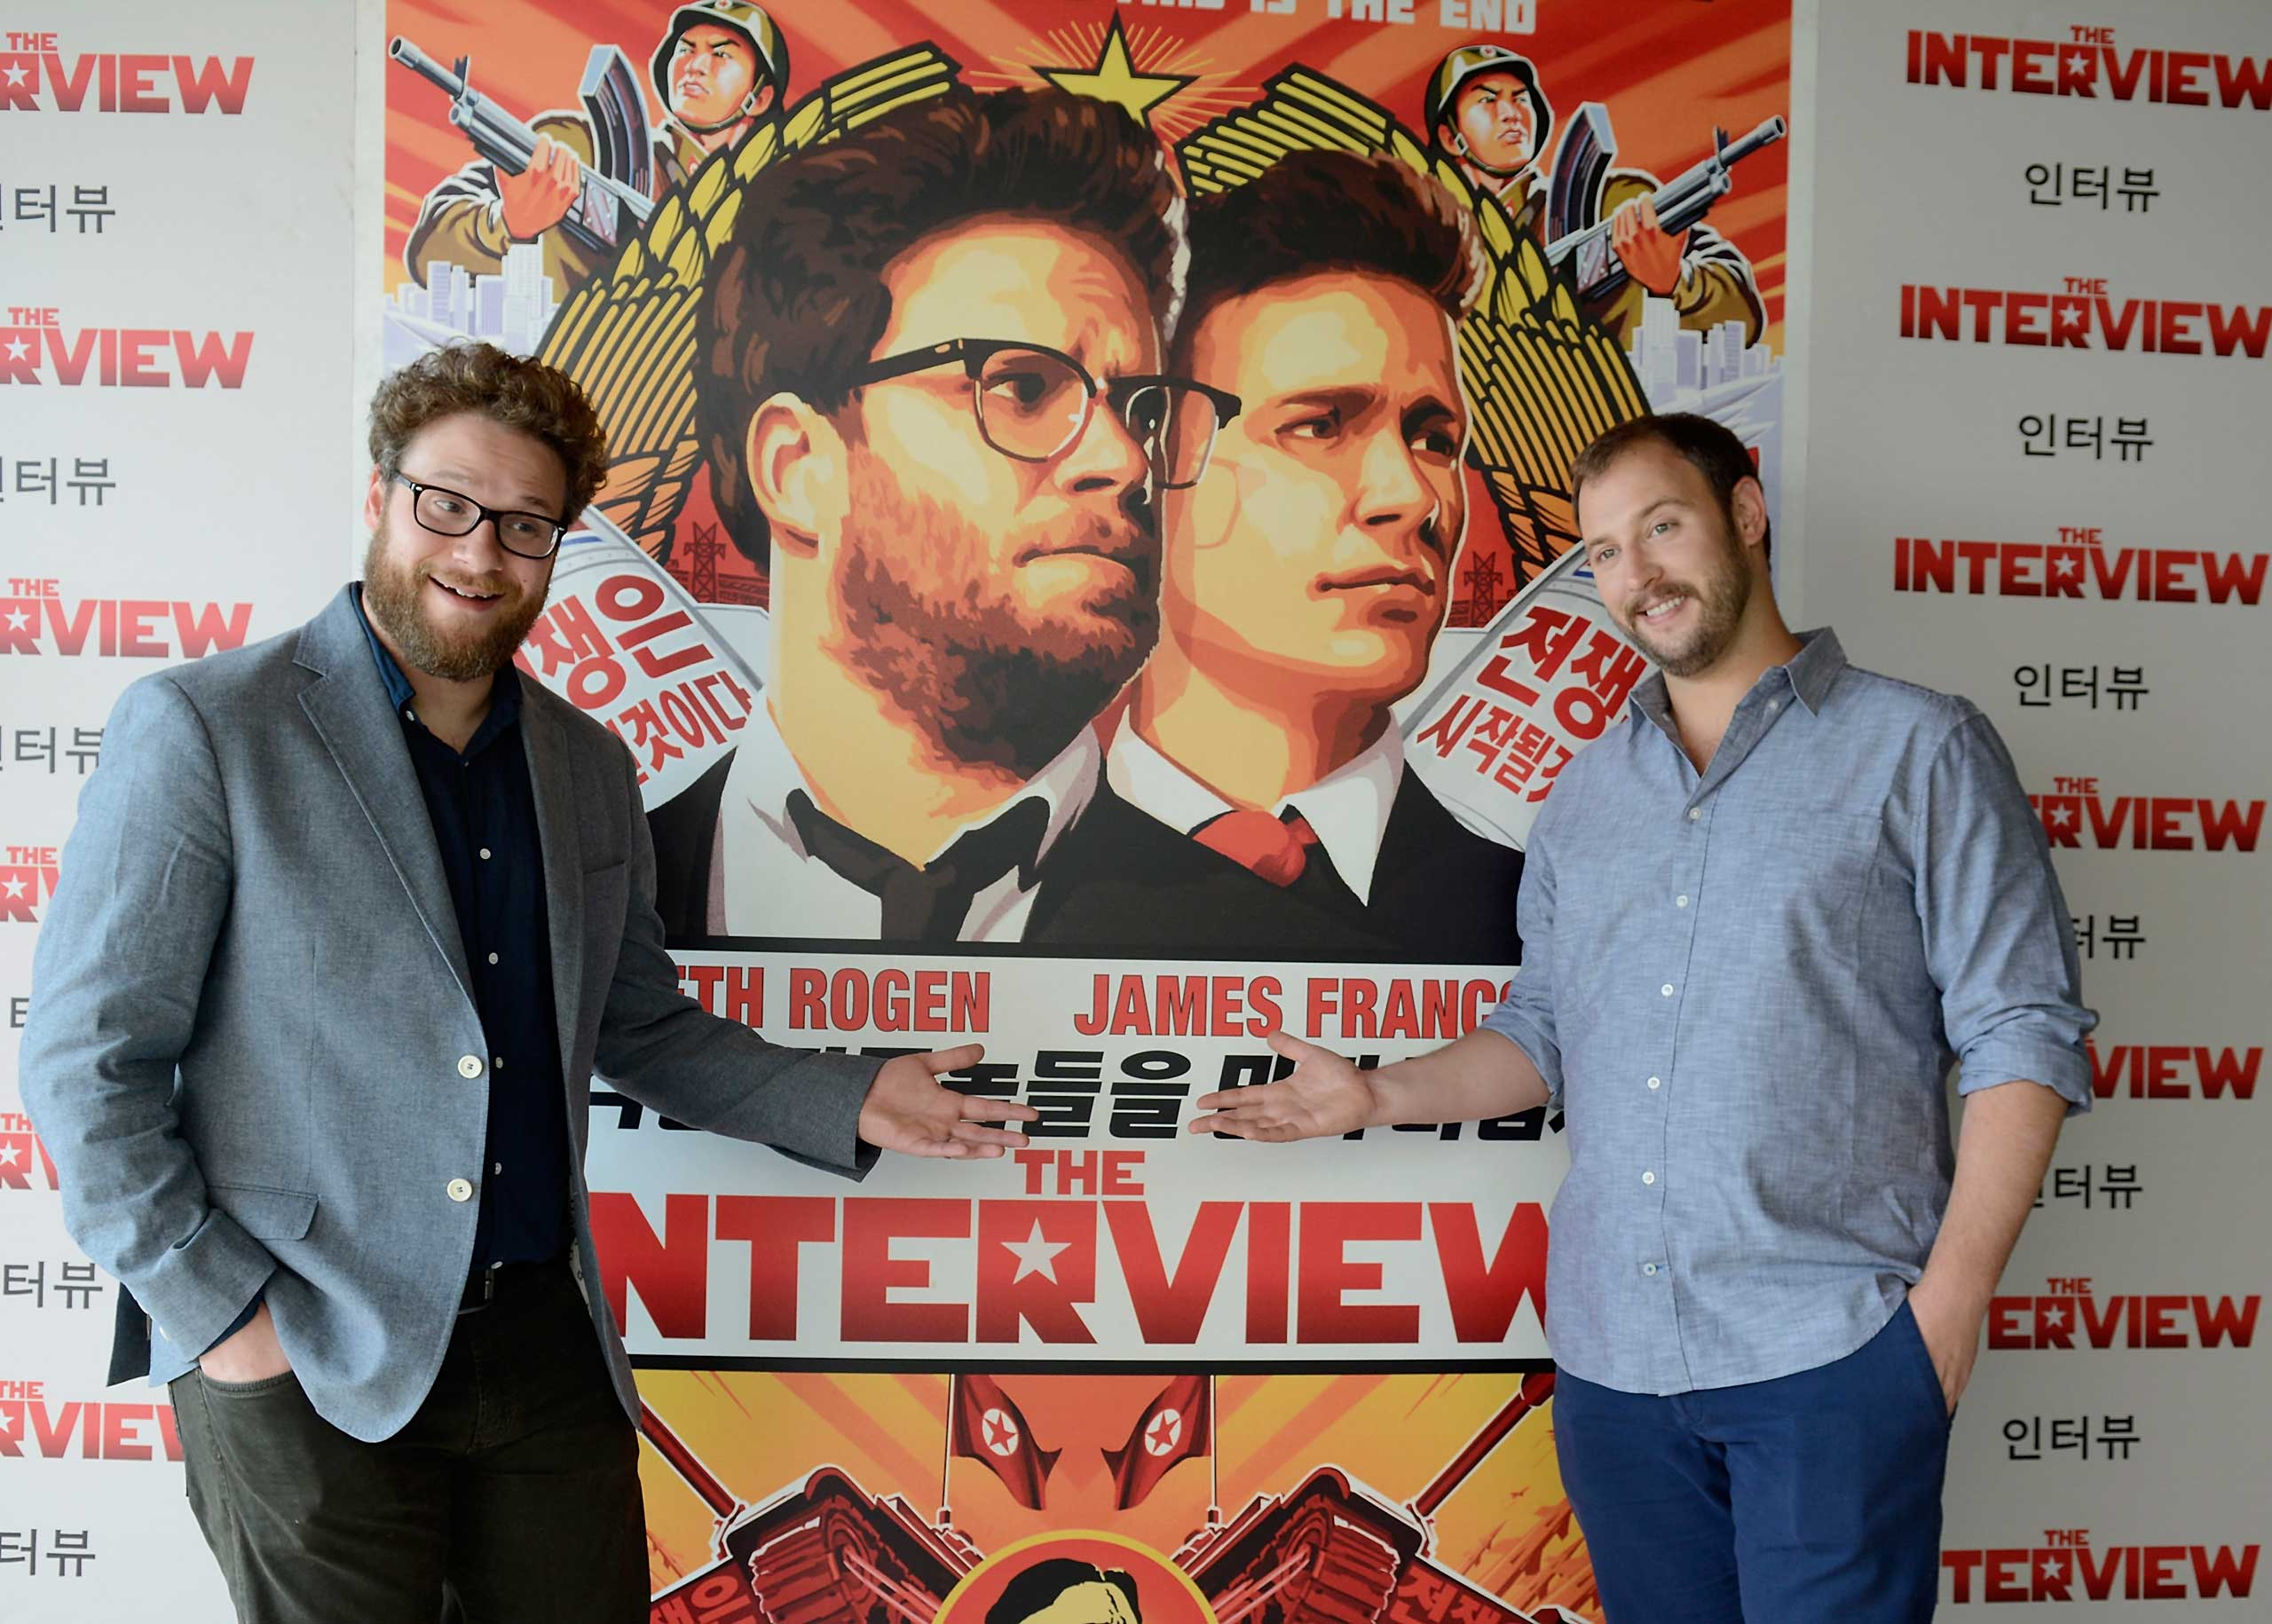 Seth Rogen (L) and Evan Goldberg pose during a photocall for their latest film 'The Interview' at the Hotel Mandarin on June 18, 2014